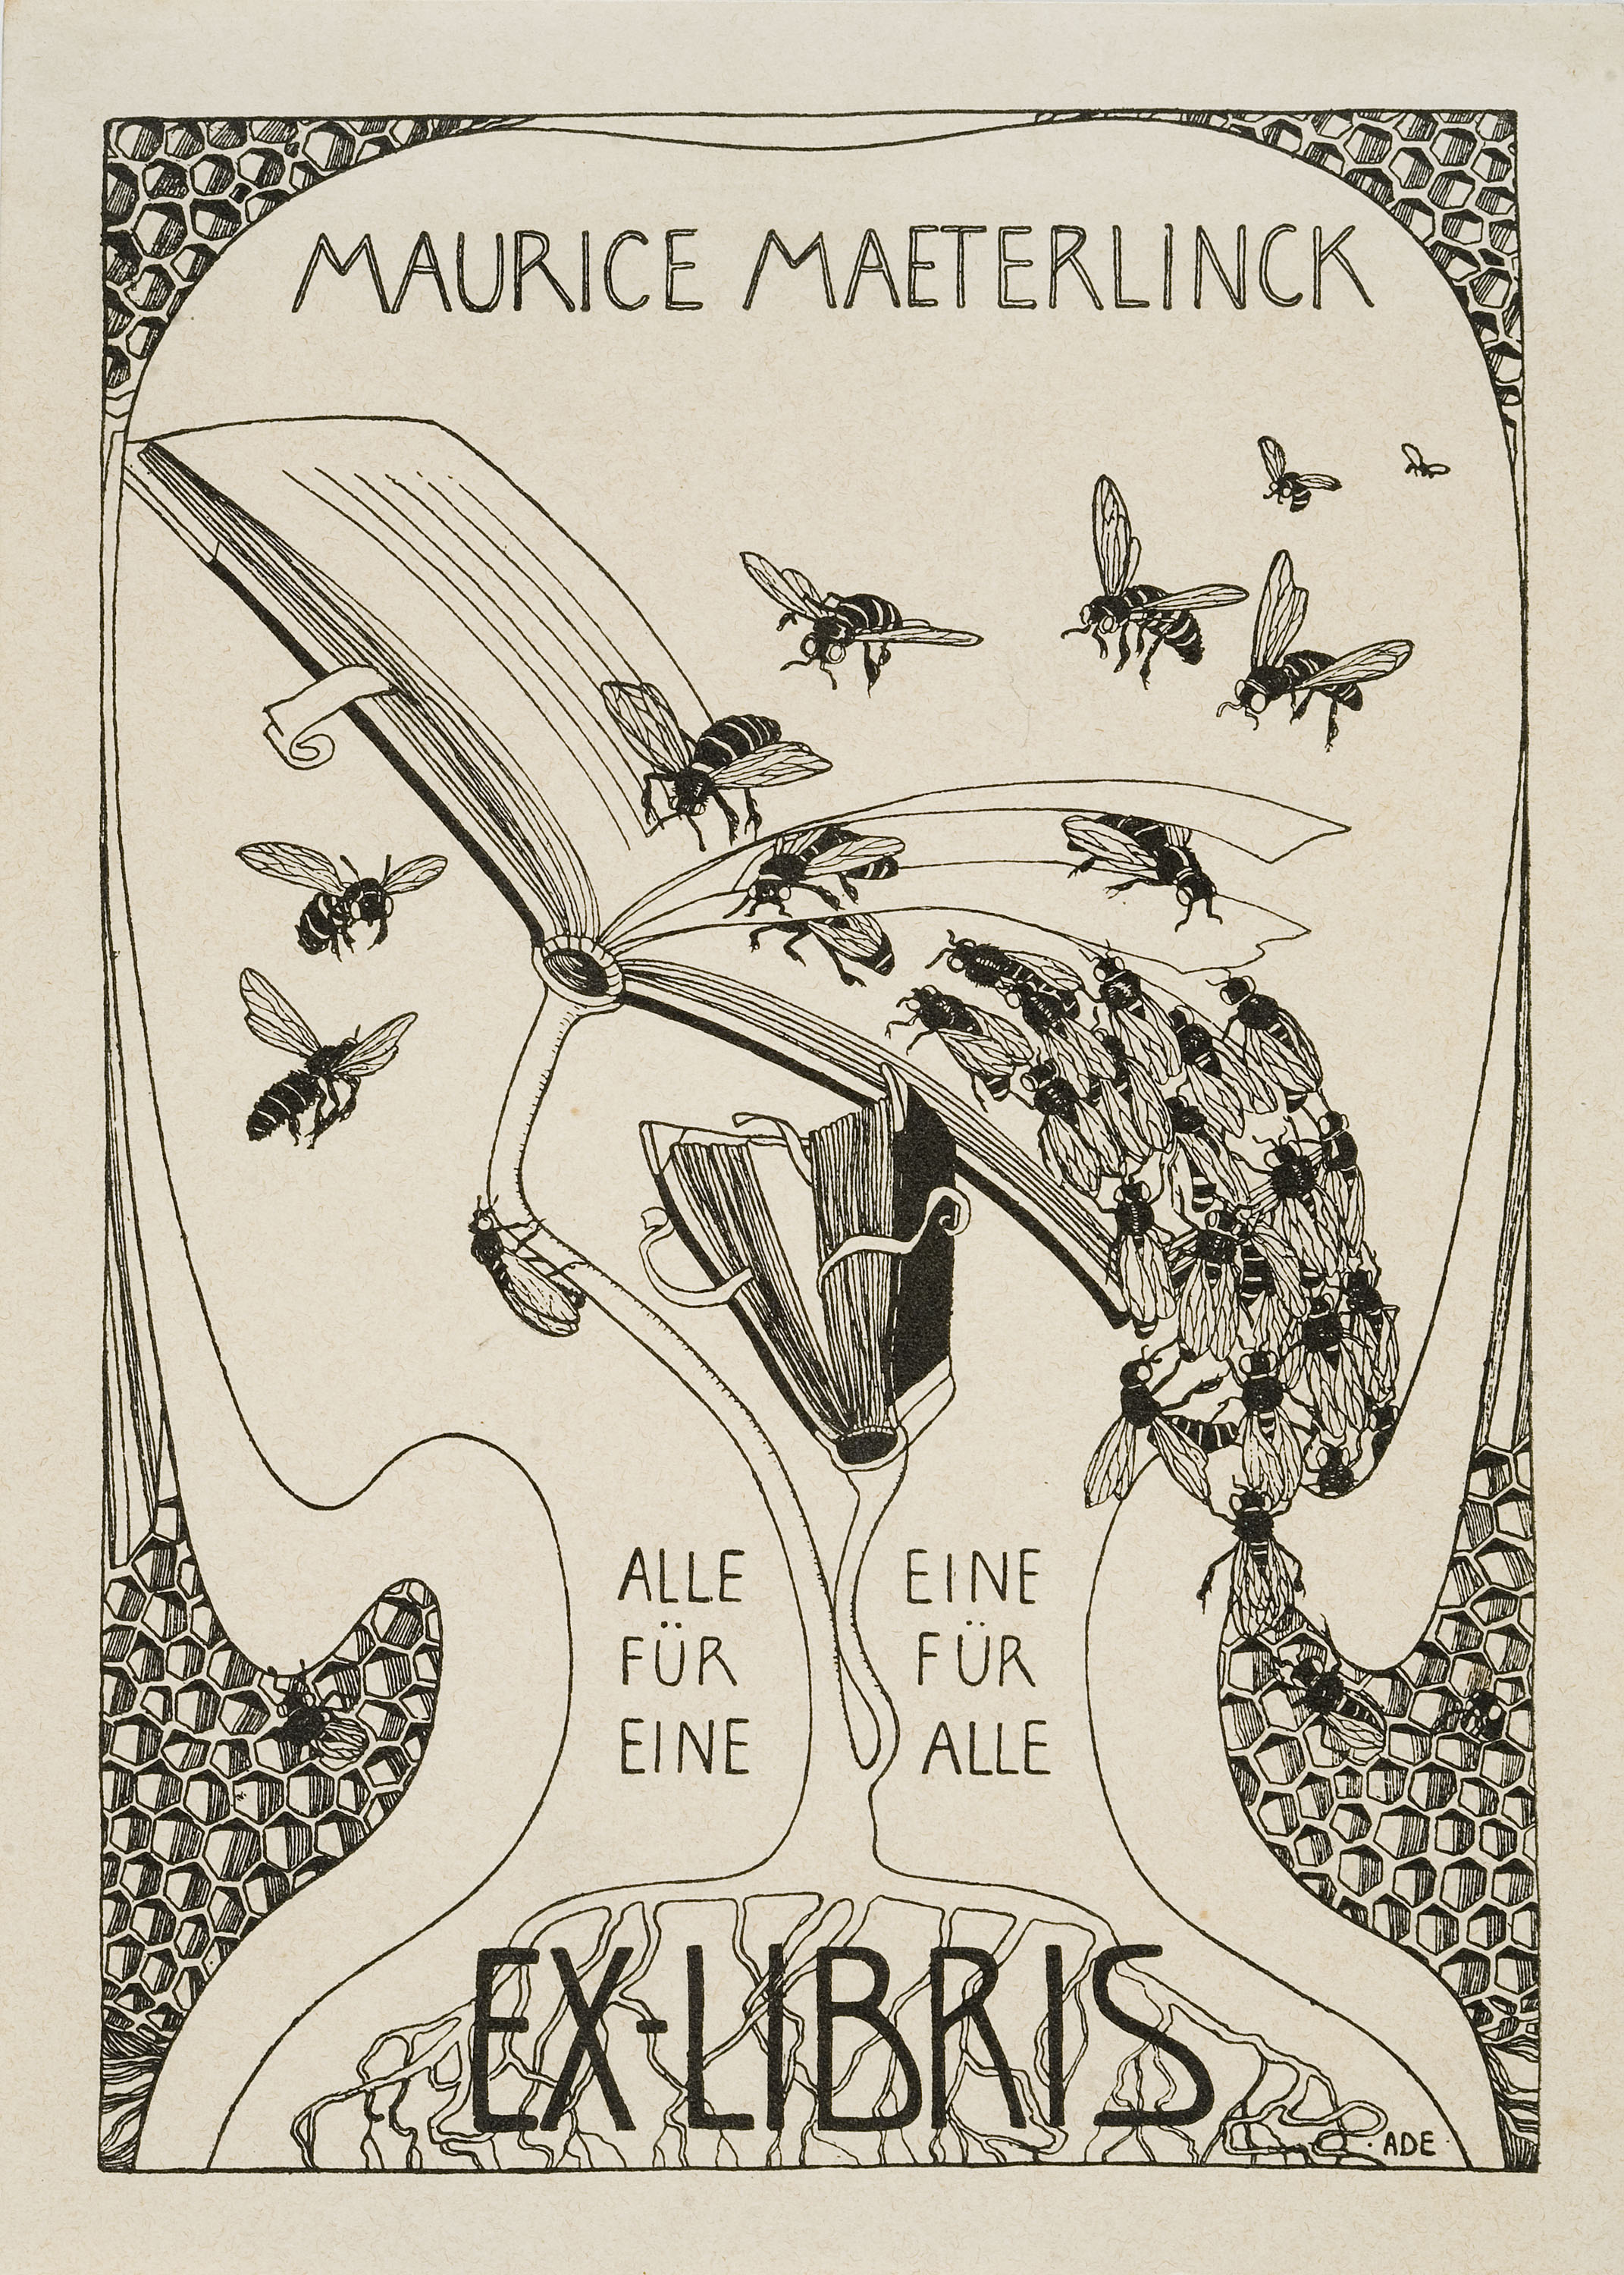 Mathilde Ade, Maurice Maeterlinck book-plate, circa 1902